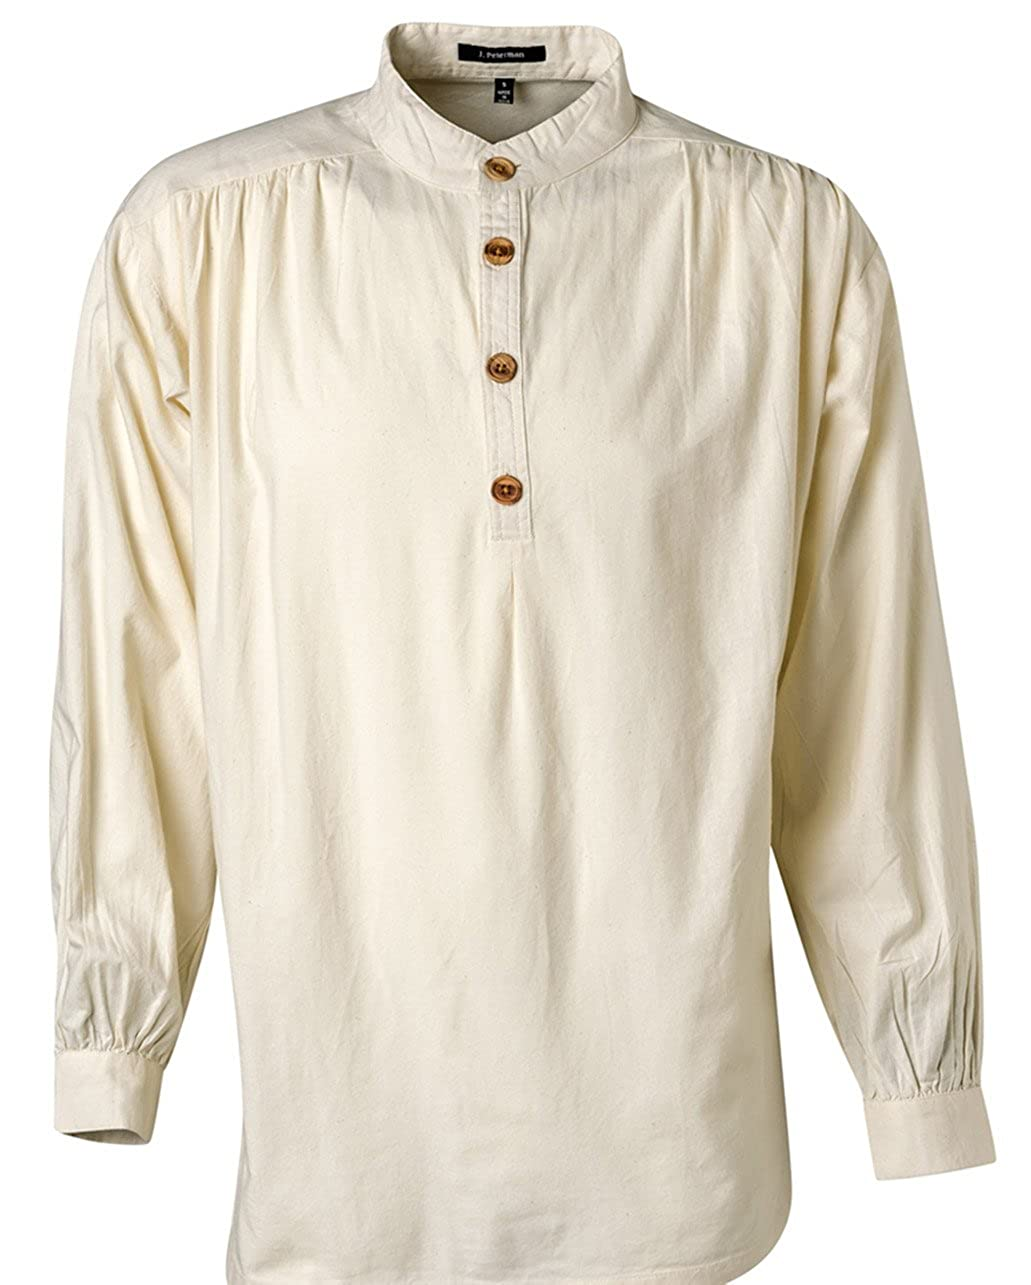 Victorian Men's Clothing The J. Peterman Shirt $44.85 AT vintagedancer.com